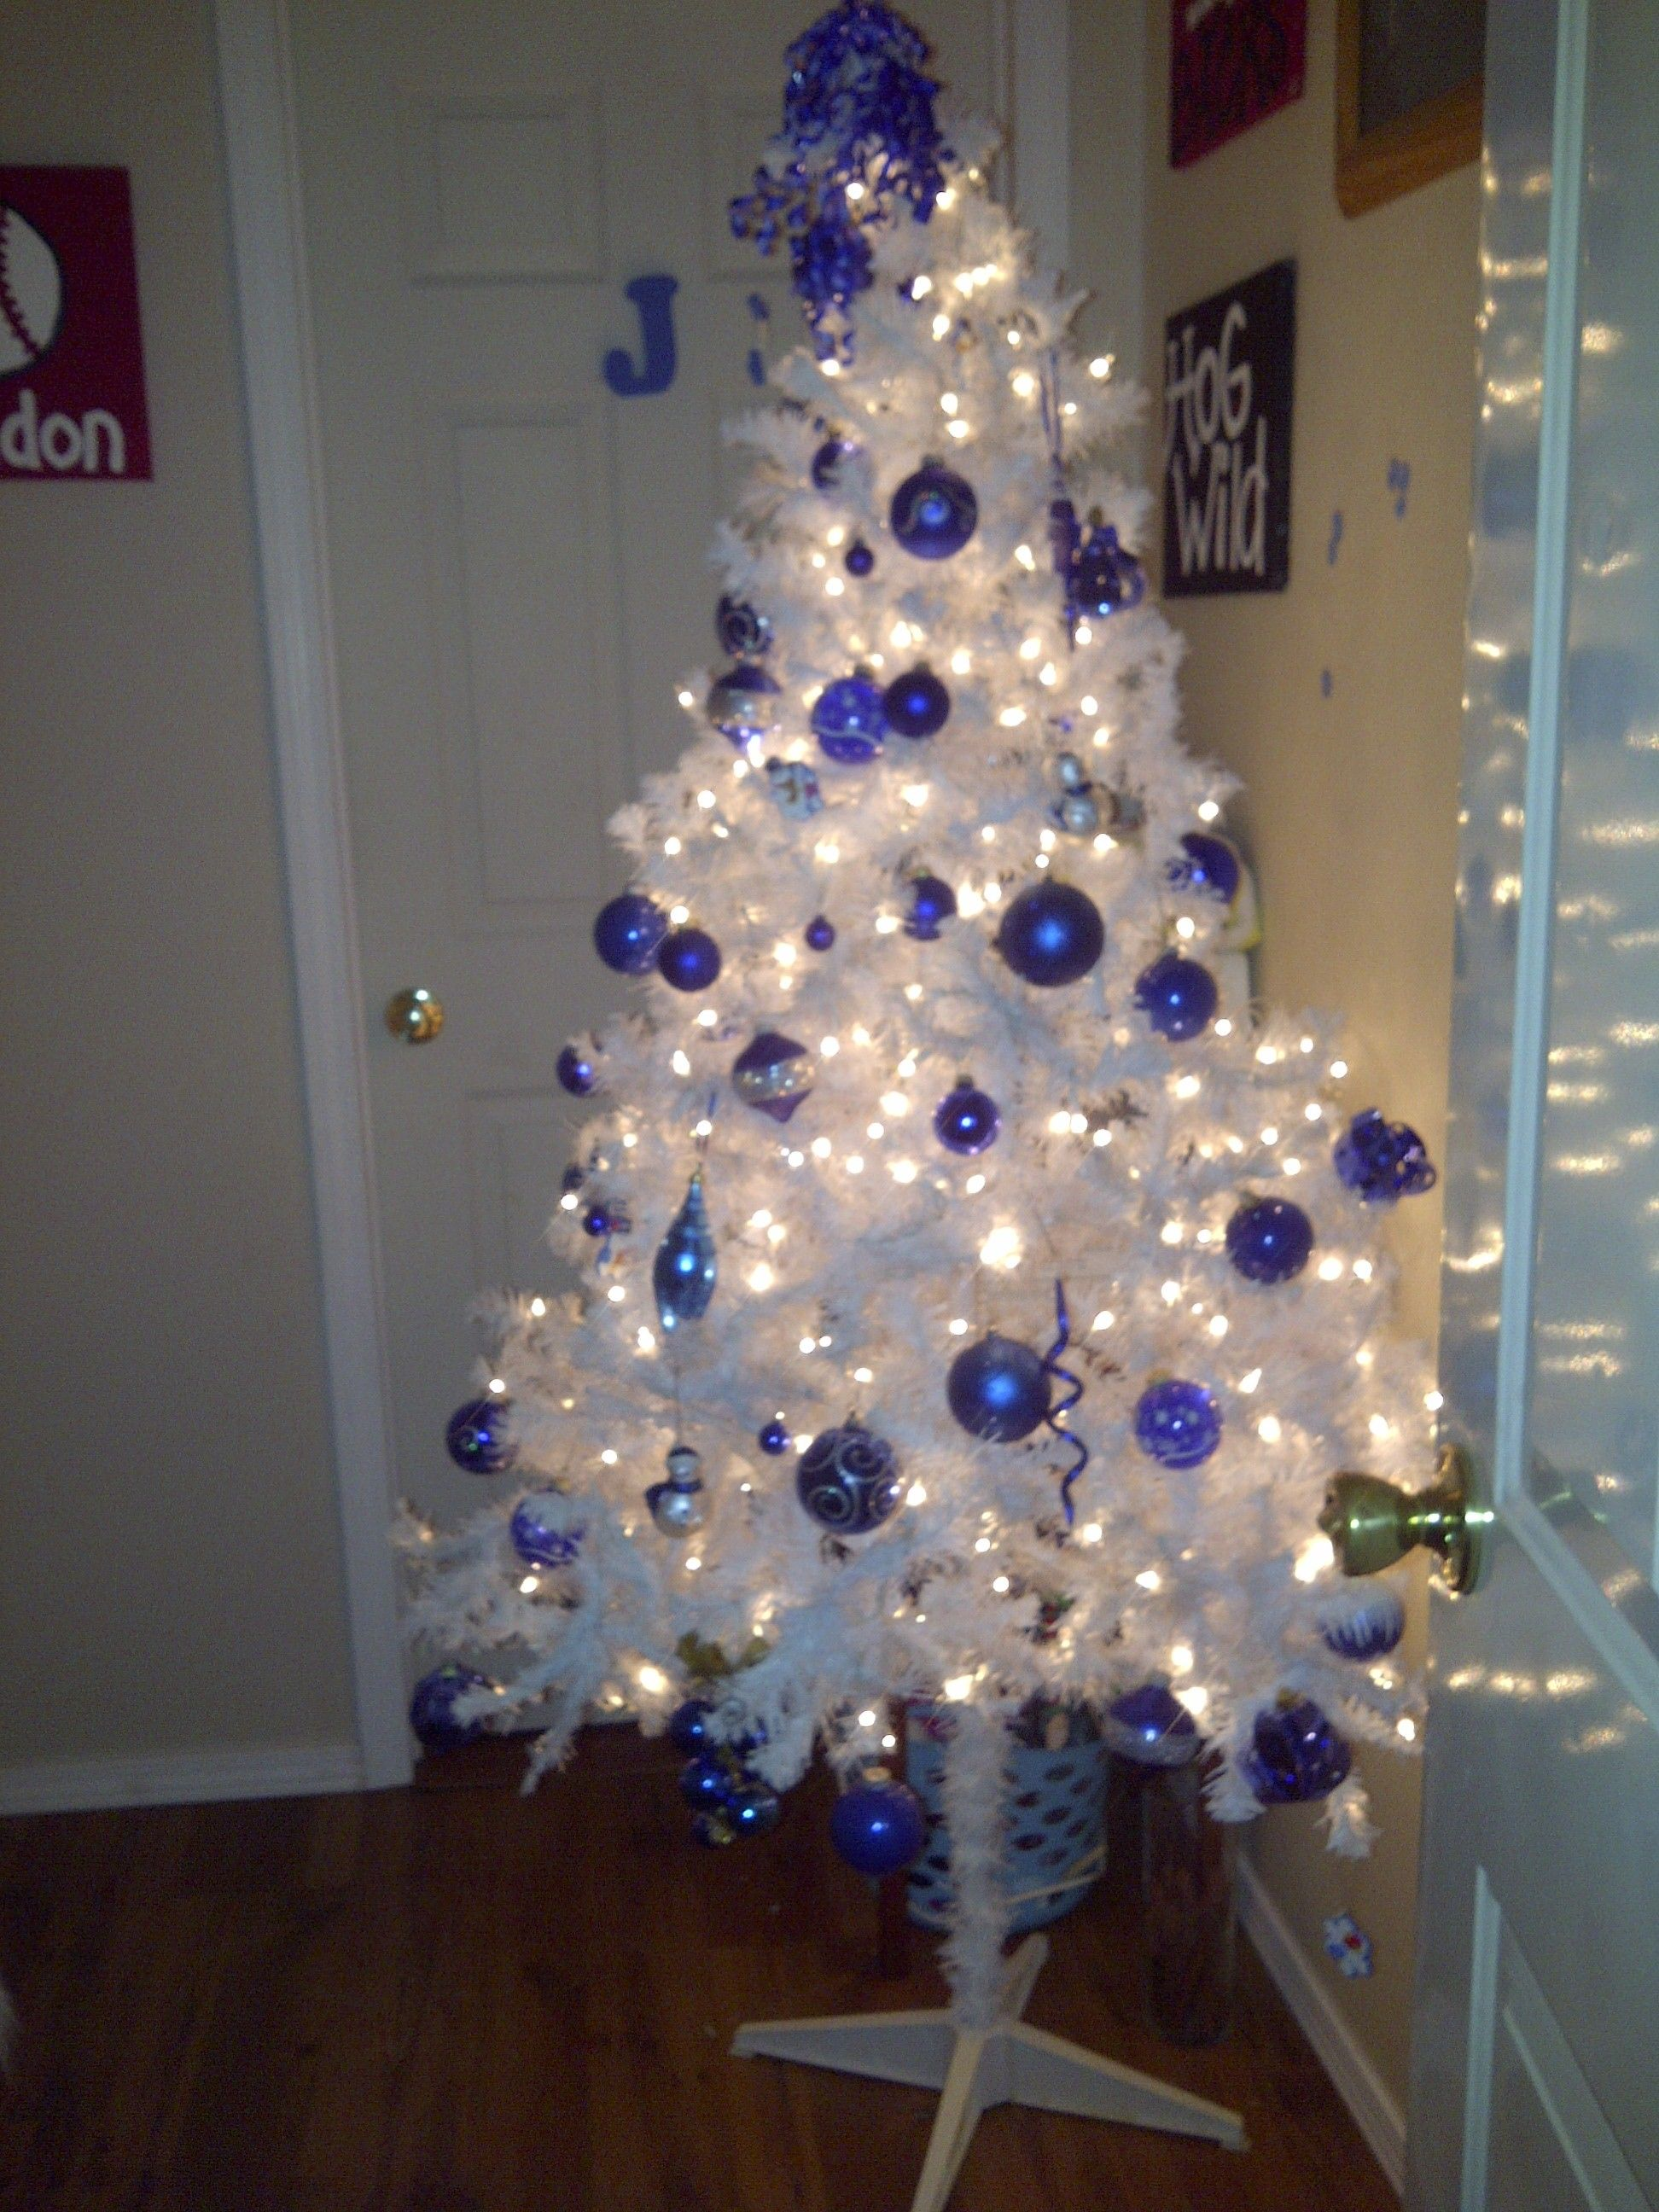 White Christmas Tree With Royal Blue Decorations White Xmas Tree Kentucky Christmas Tree White Christmas Trees